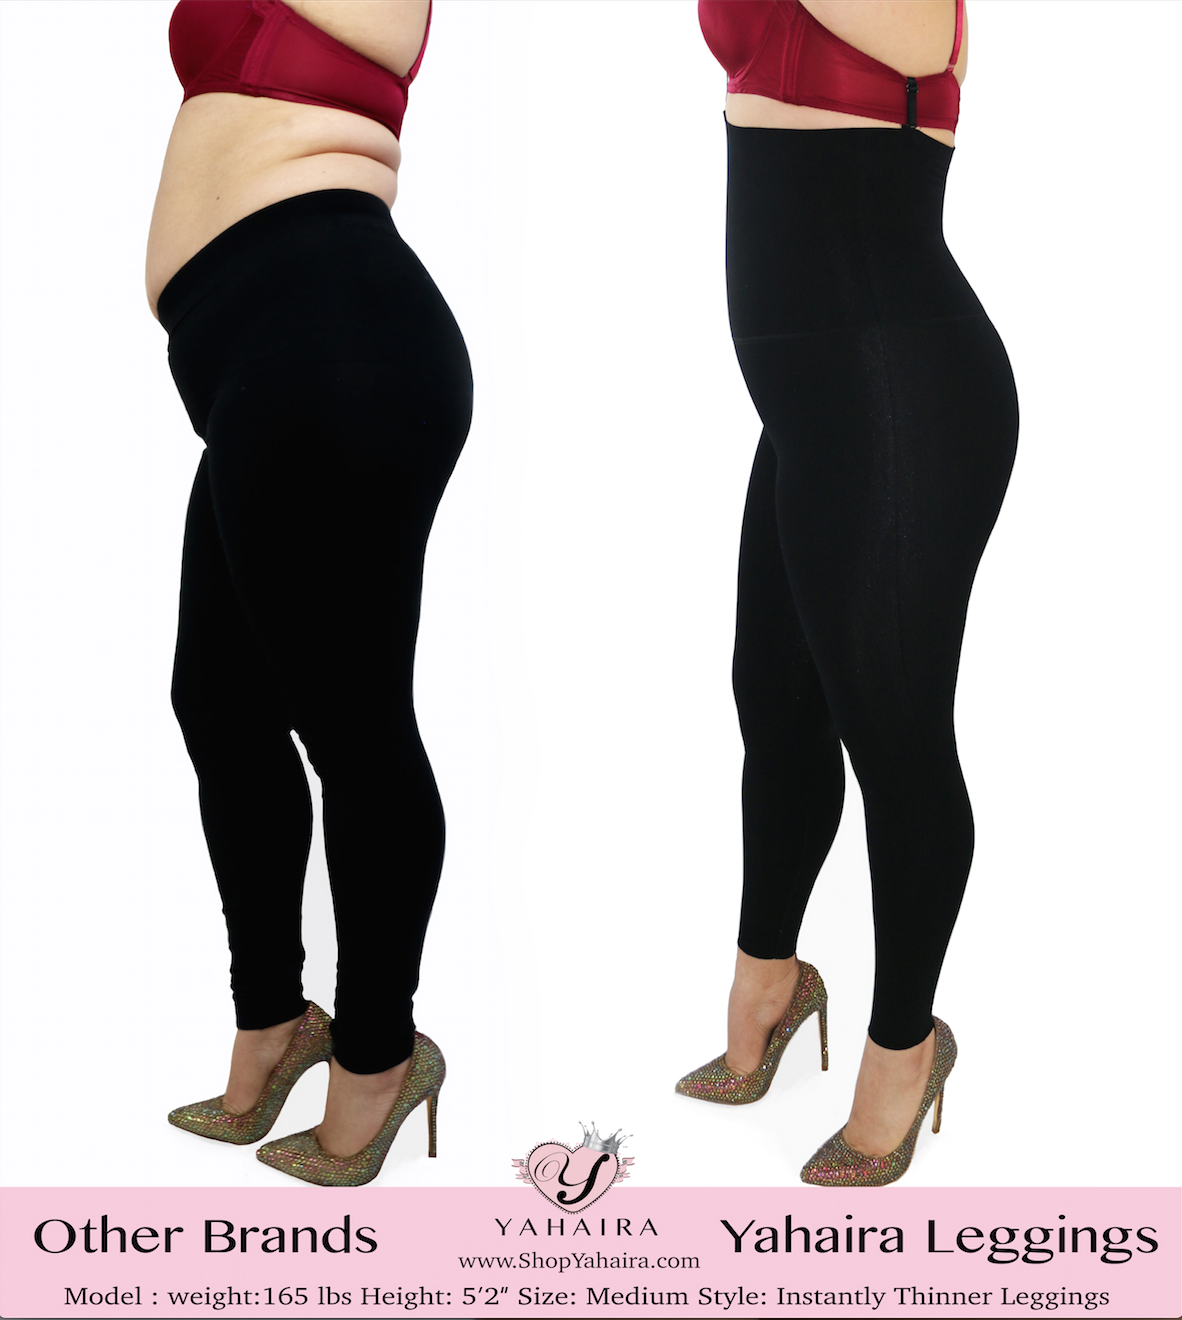 instanty-hinner-leggings-beore-and-after-2017.png